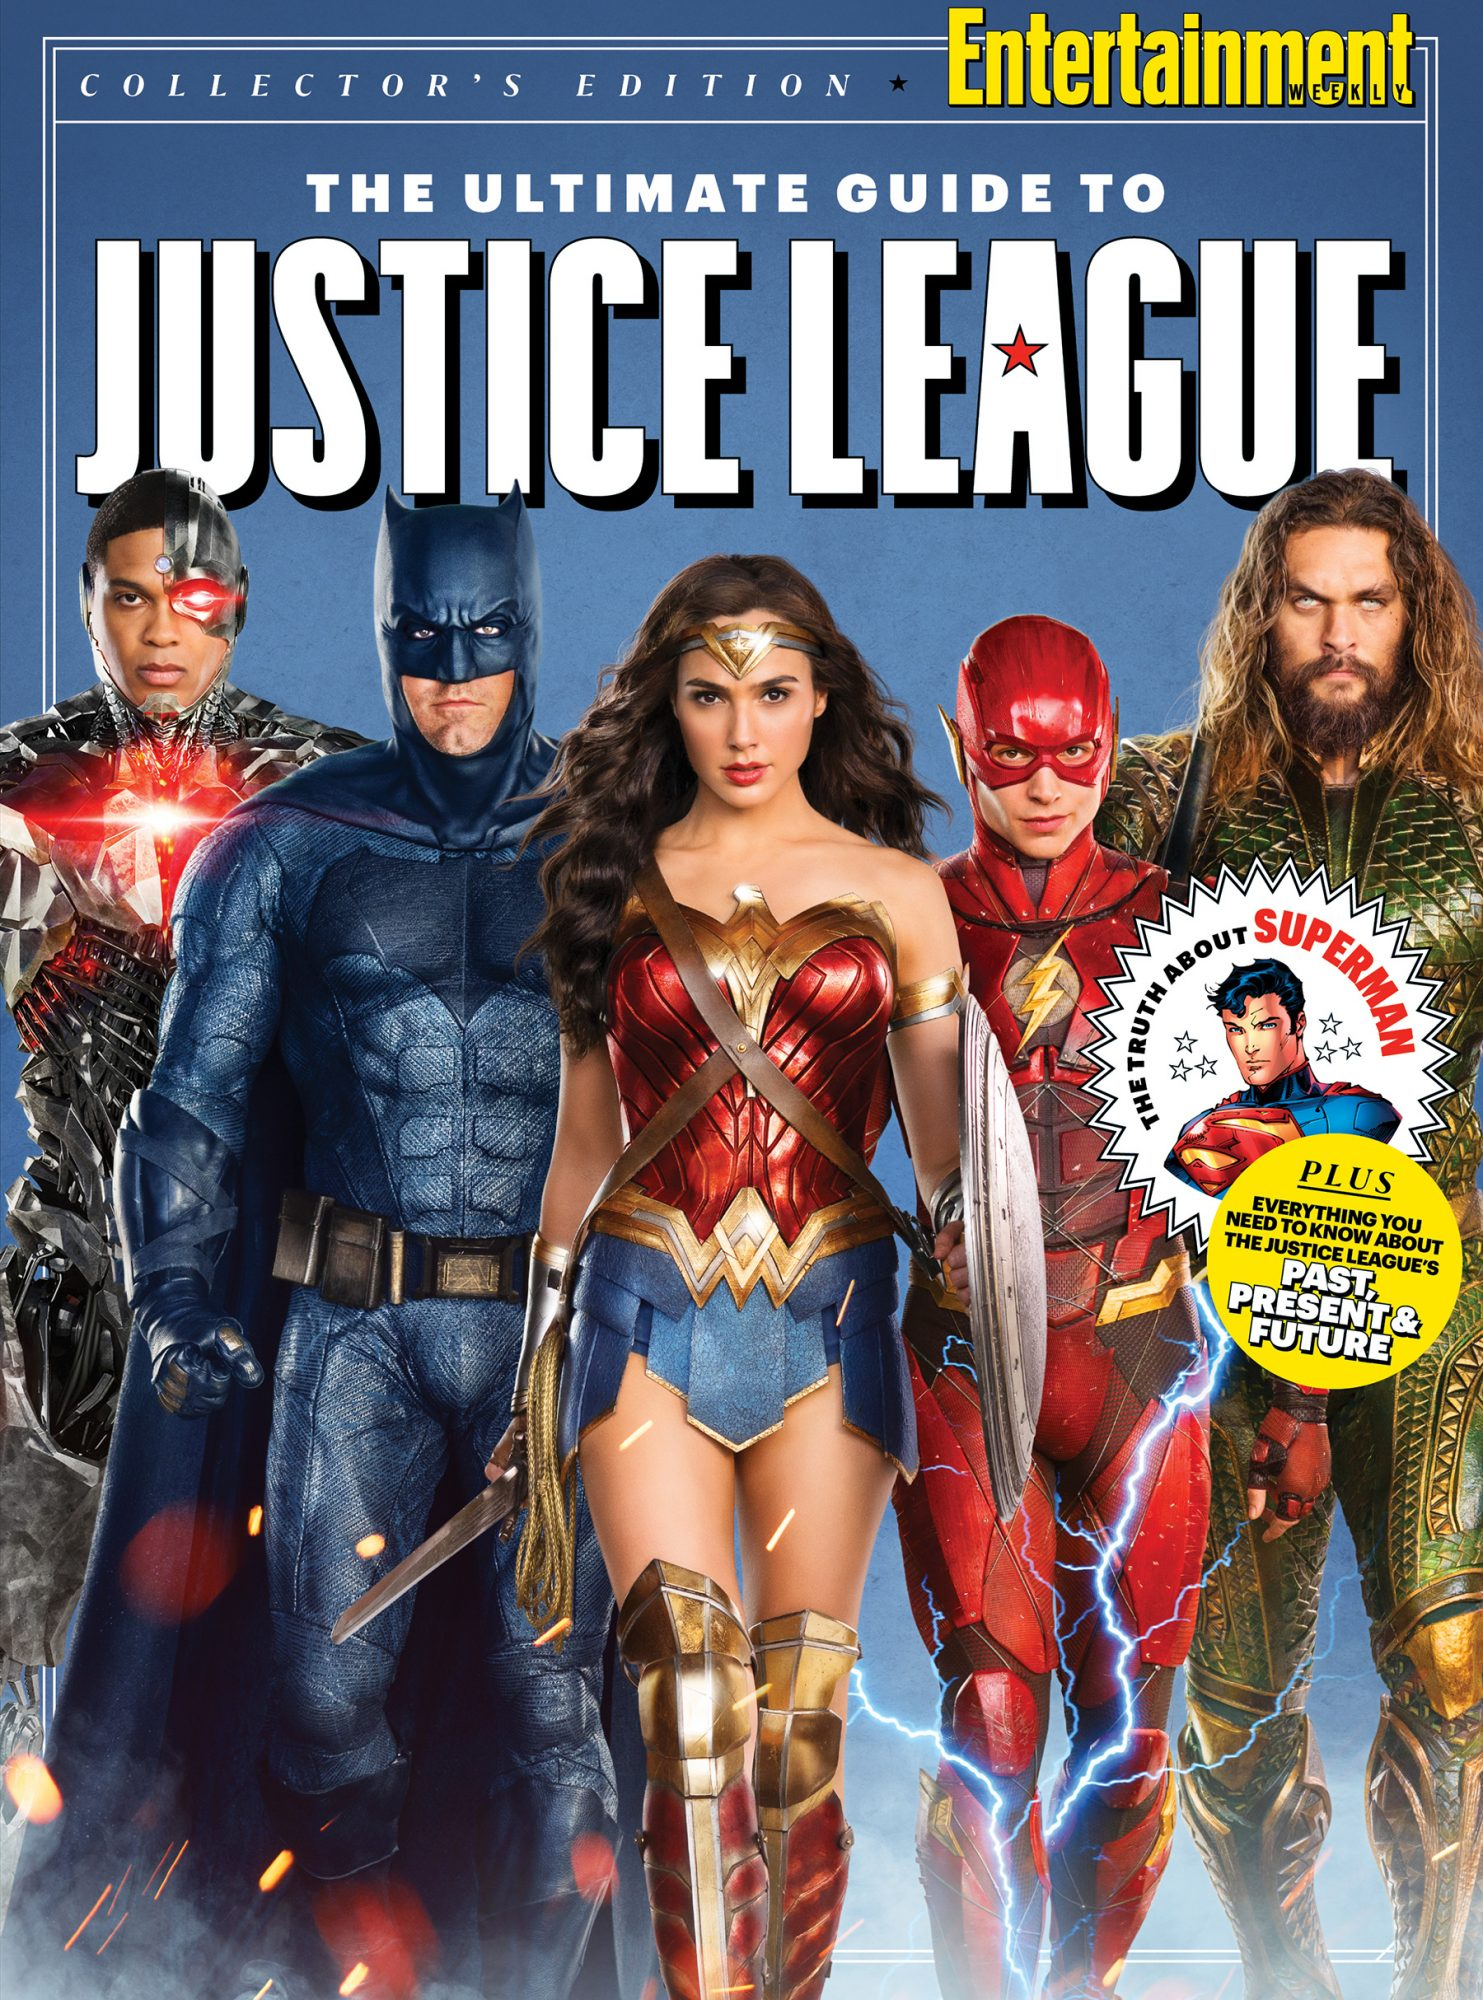 For more on the Justice League...